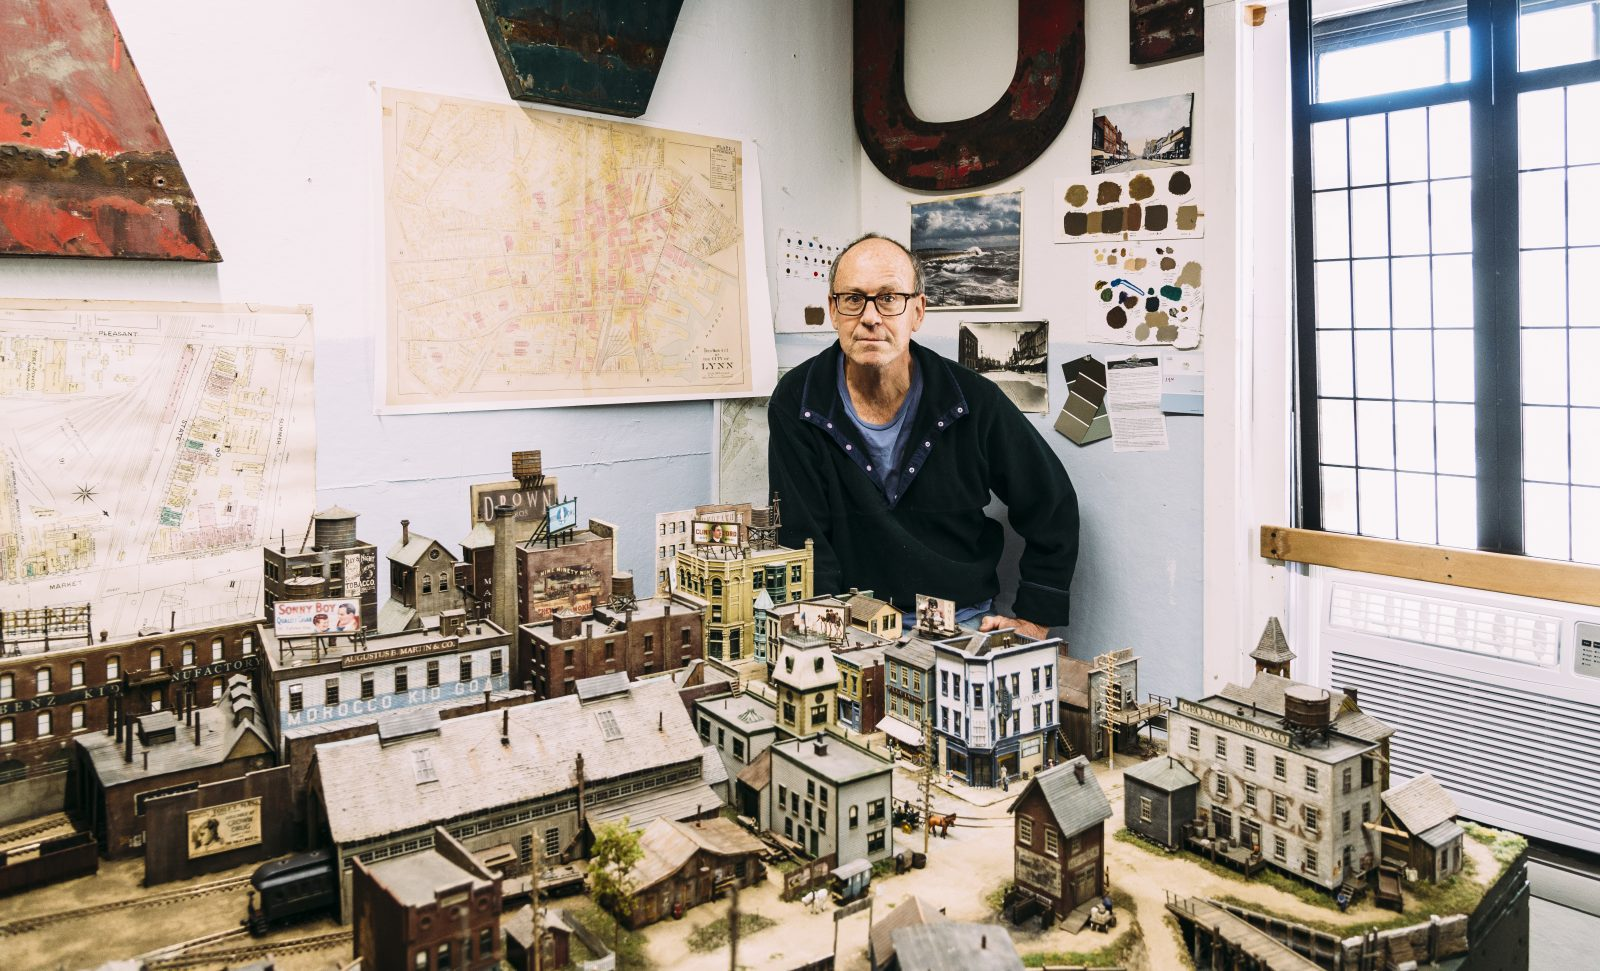 This man has spent years building a model of Lynn in 1895